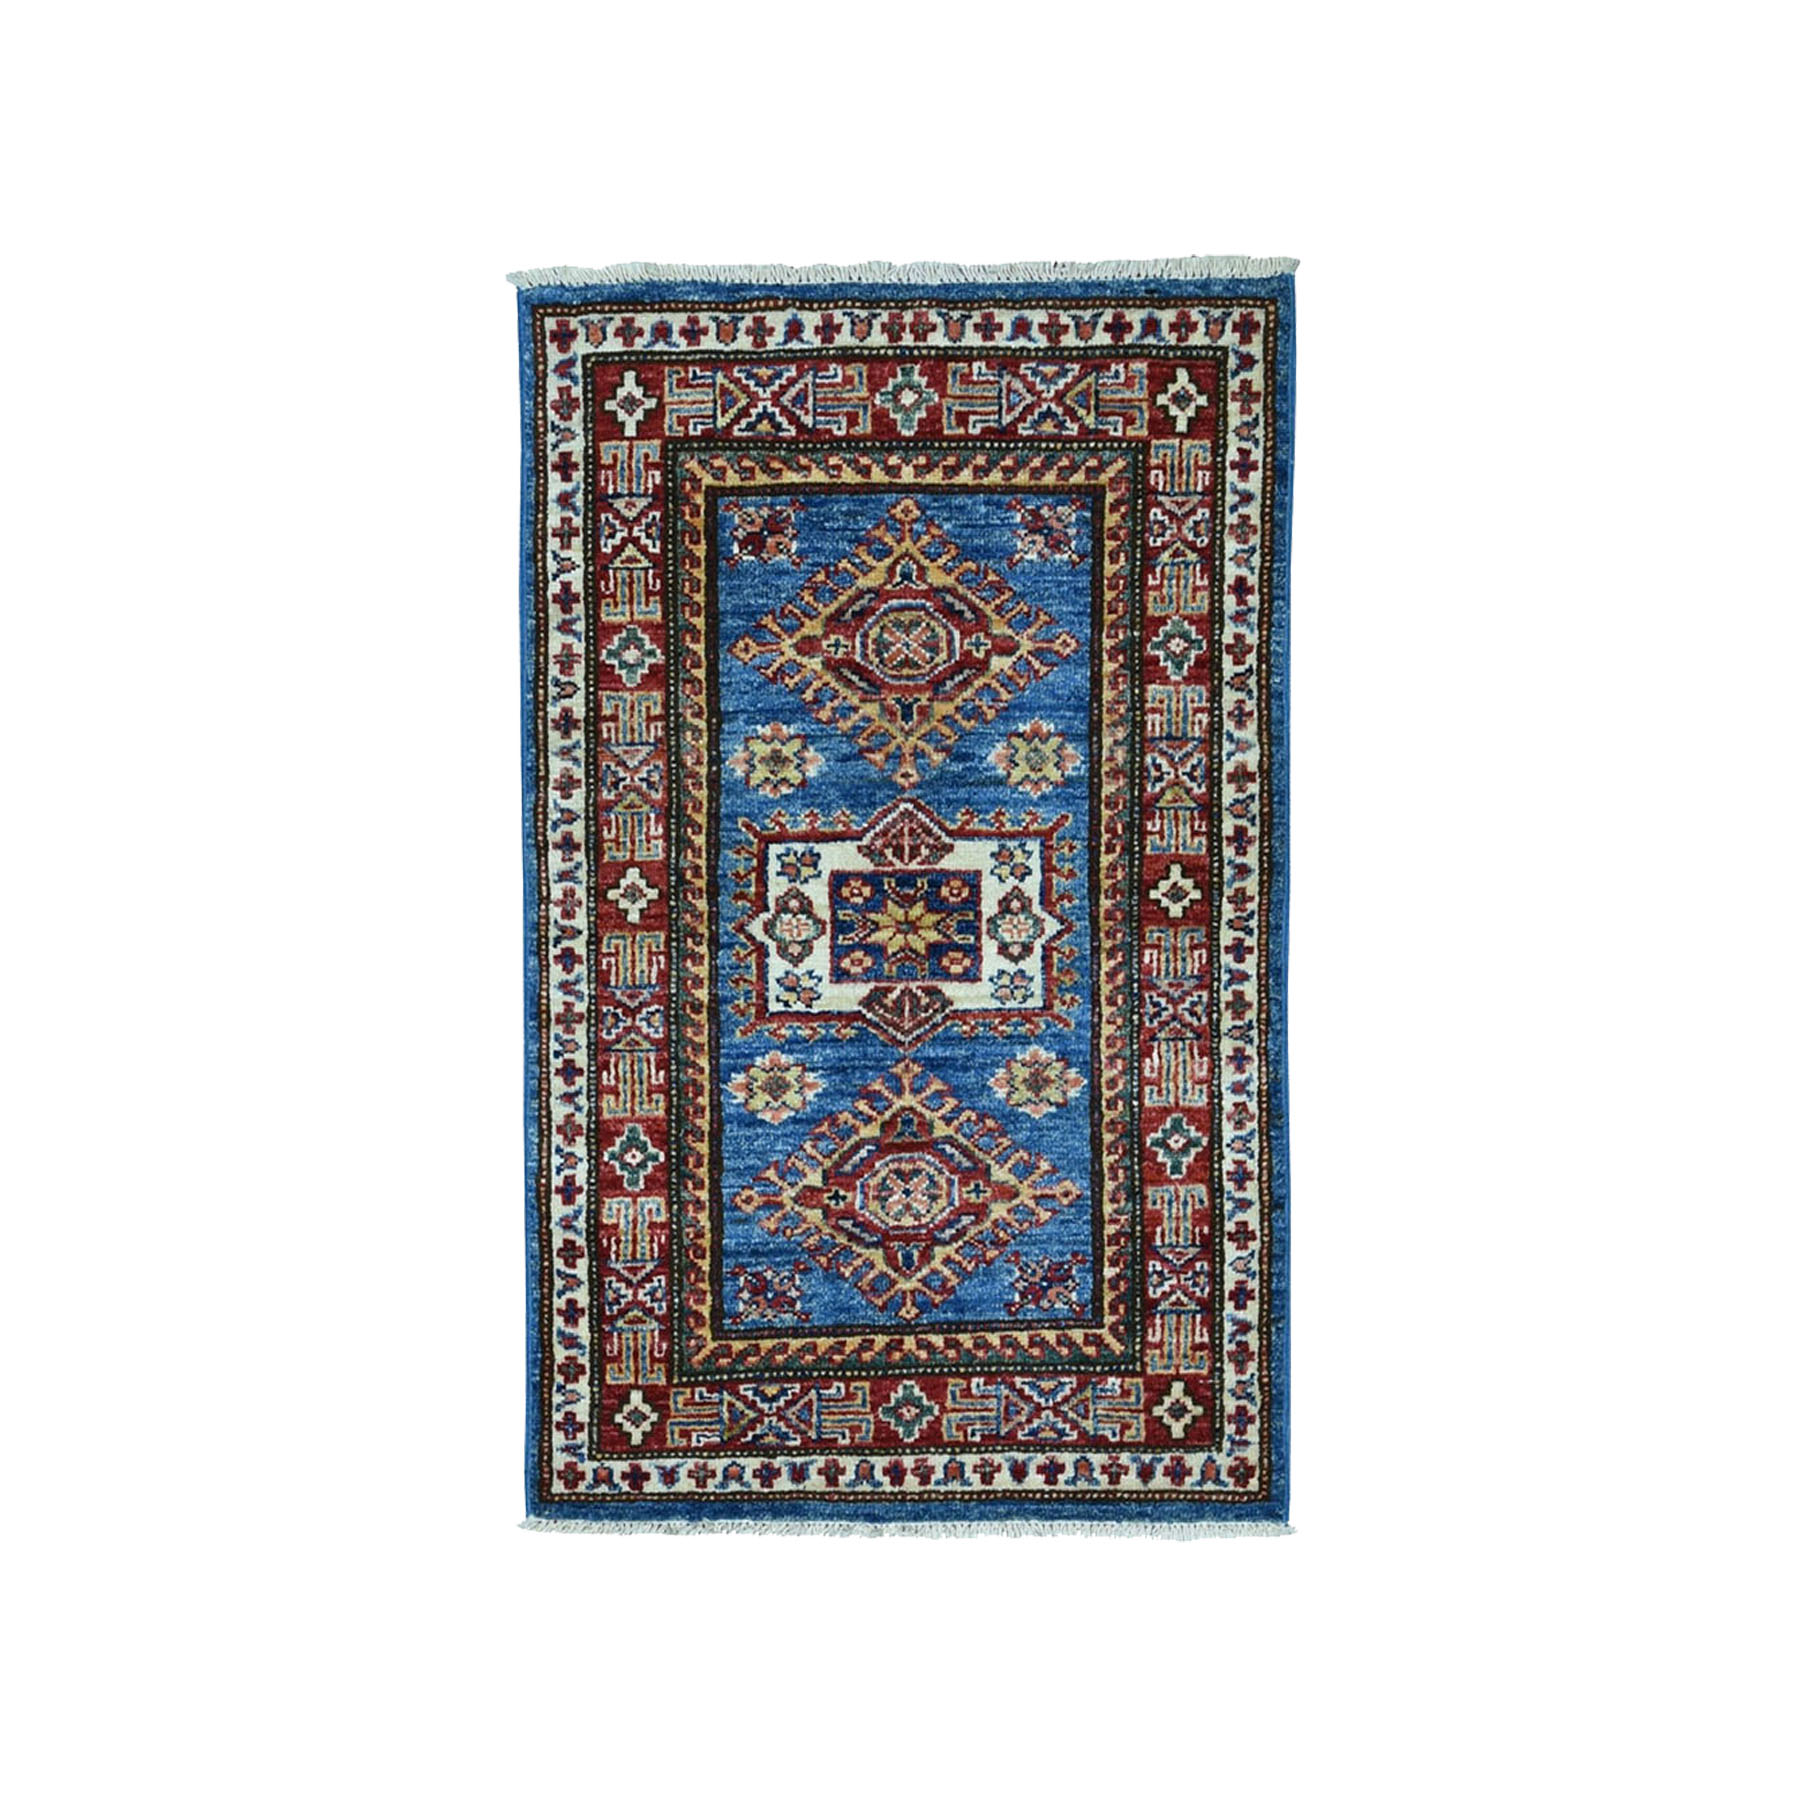 2'x3' Super Kazak Pure Wool Blue Geometric Design Hand Woven Oriental Rug